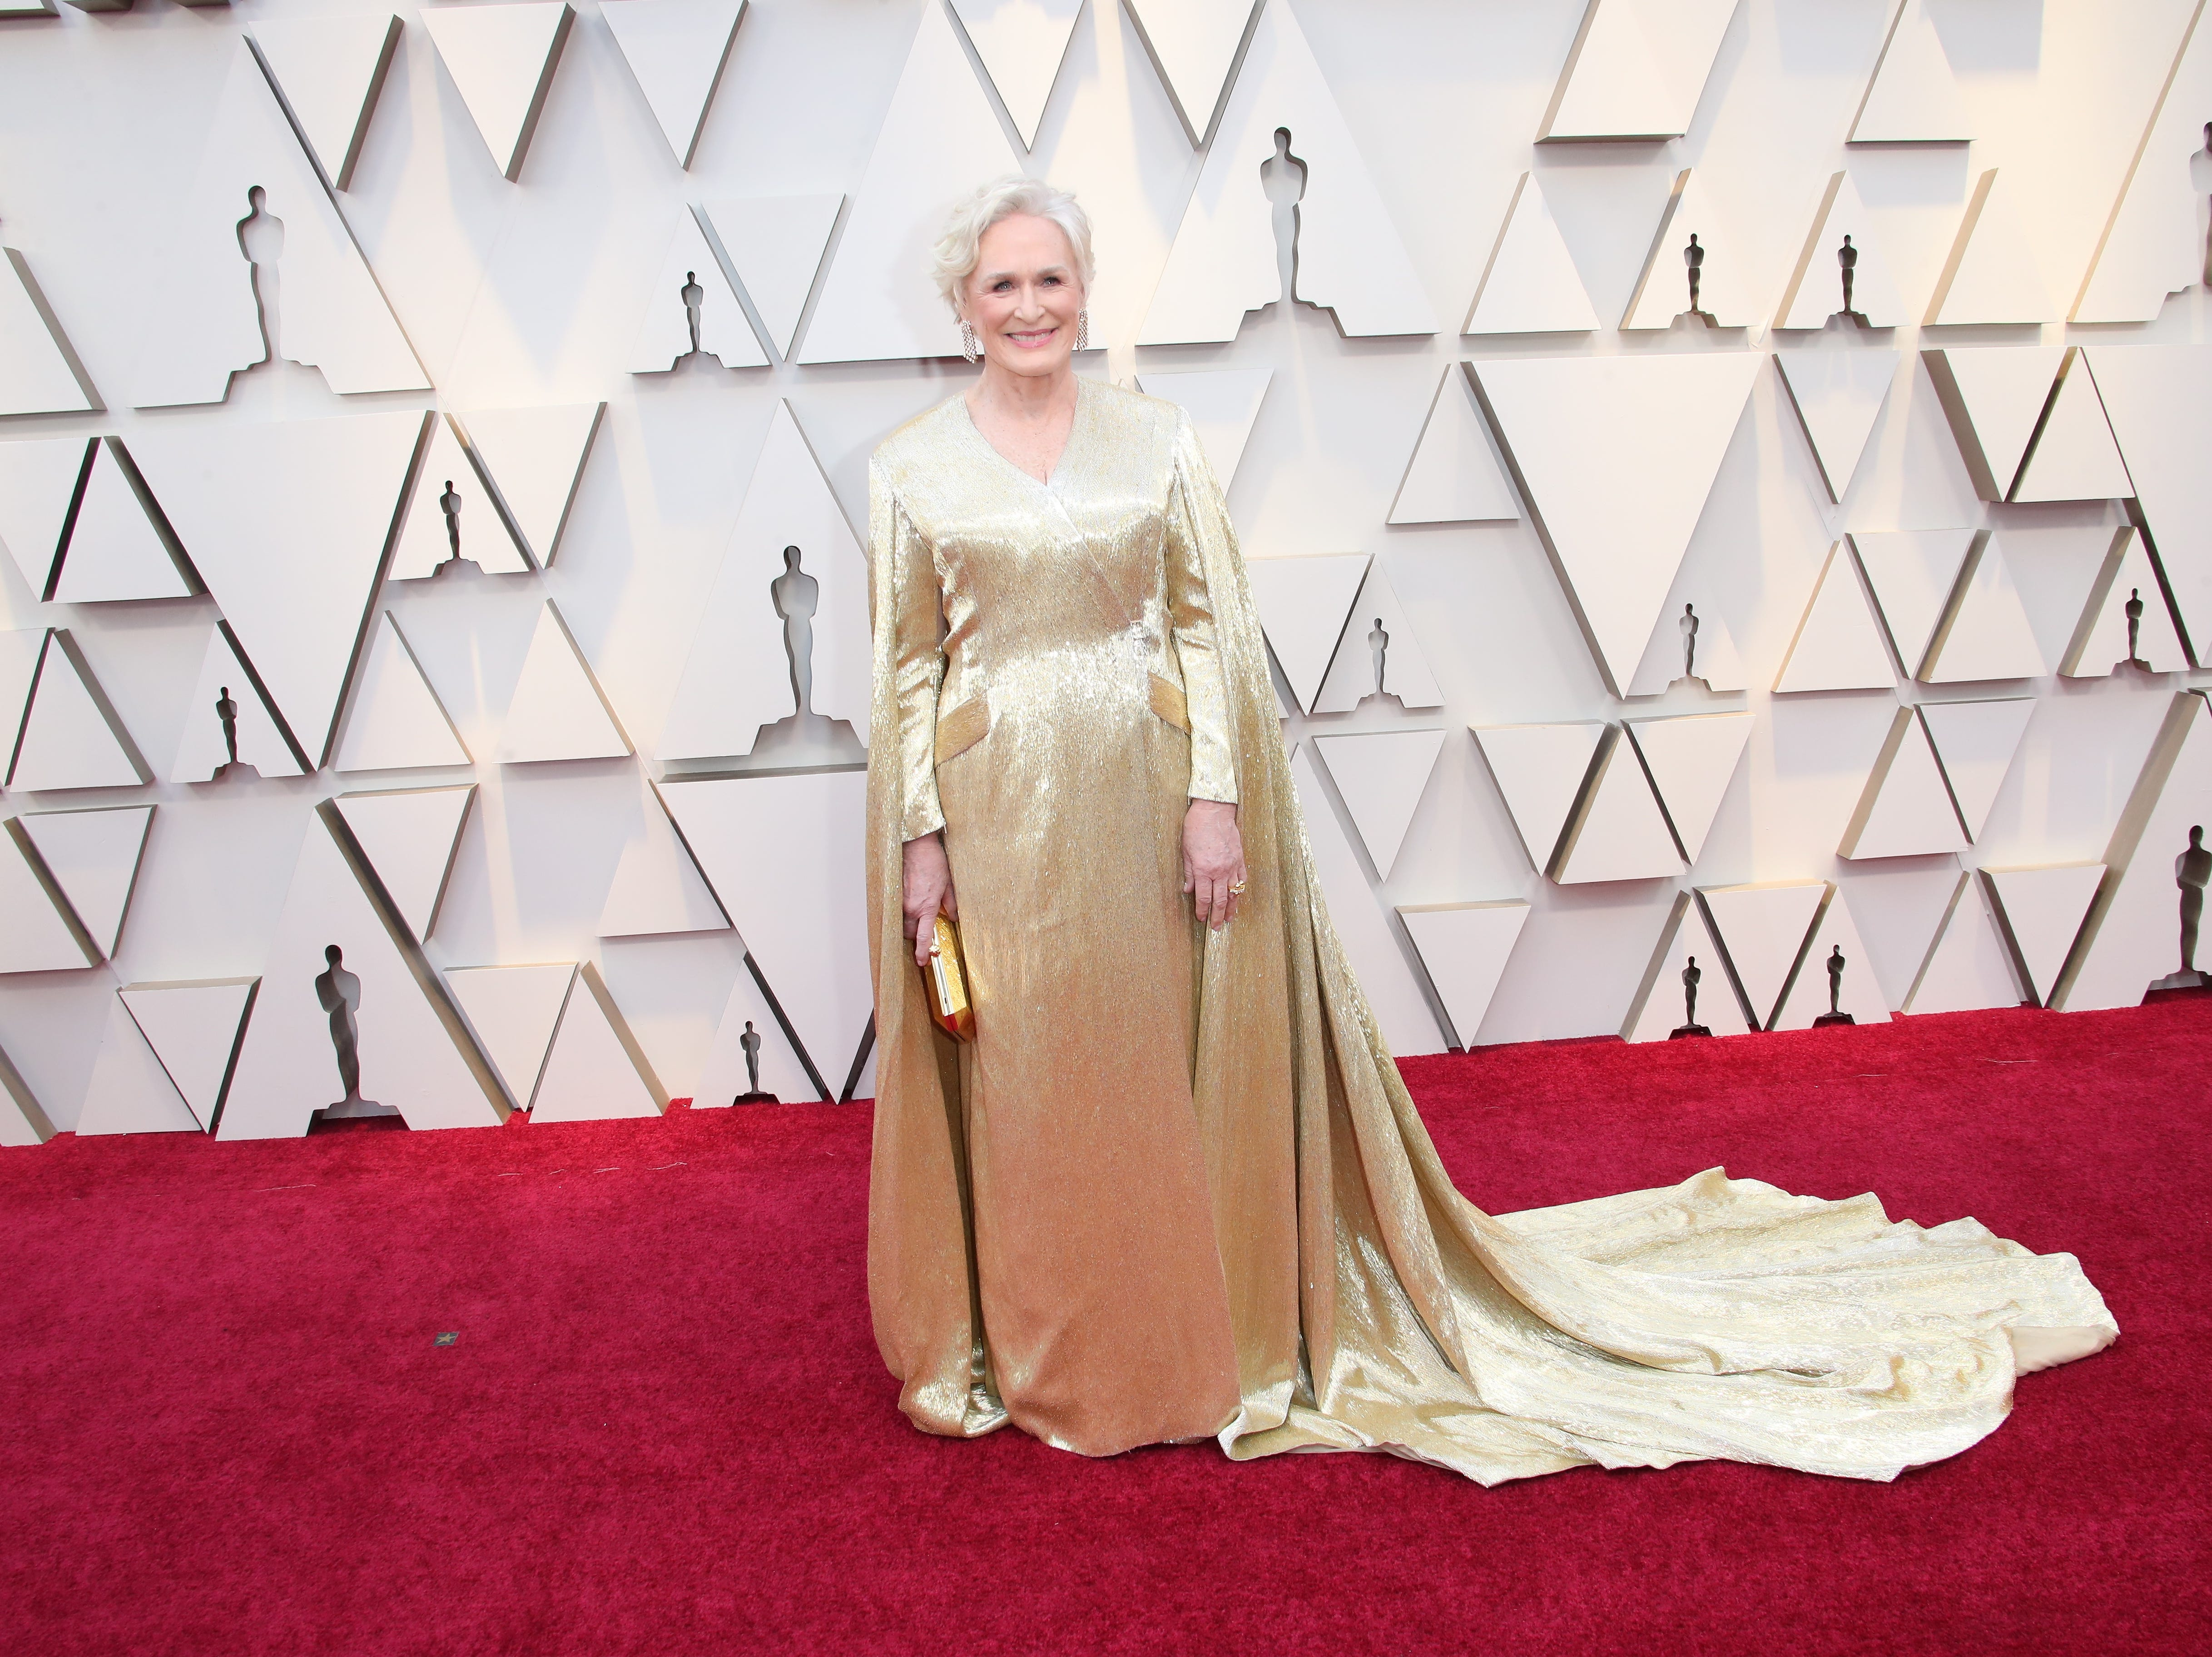 February 24, 2019; Los Angeles, CA, USA; Glenn Close arrives at the 91st Academy Awards at the Dolby Theatre. Mandatory Credit: Dan MacMedan-USA TODAY NETWORK (Via OlyDrop)